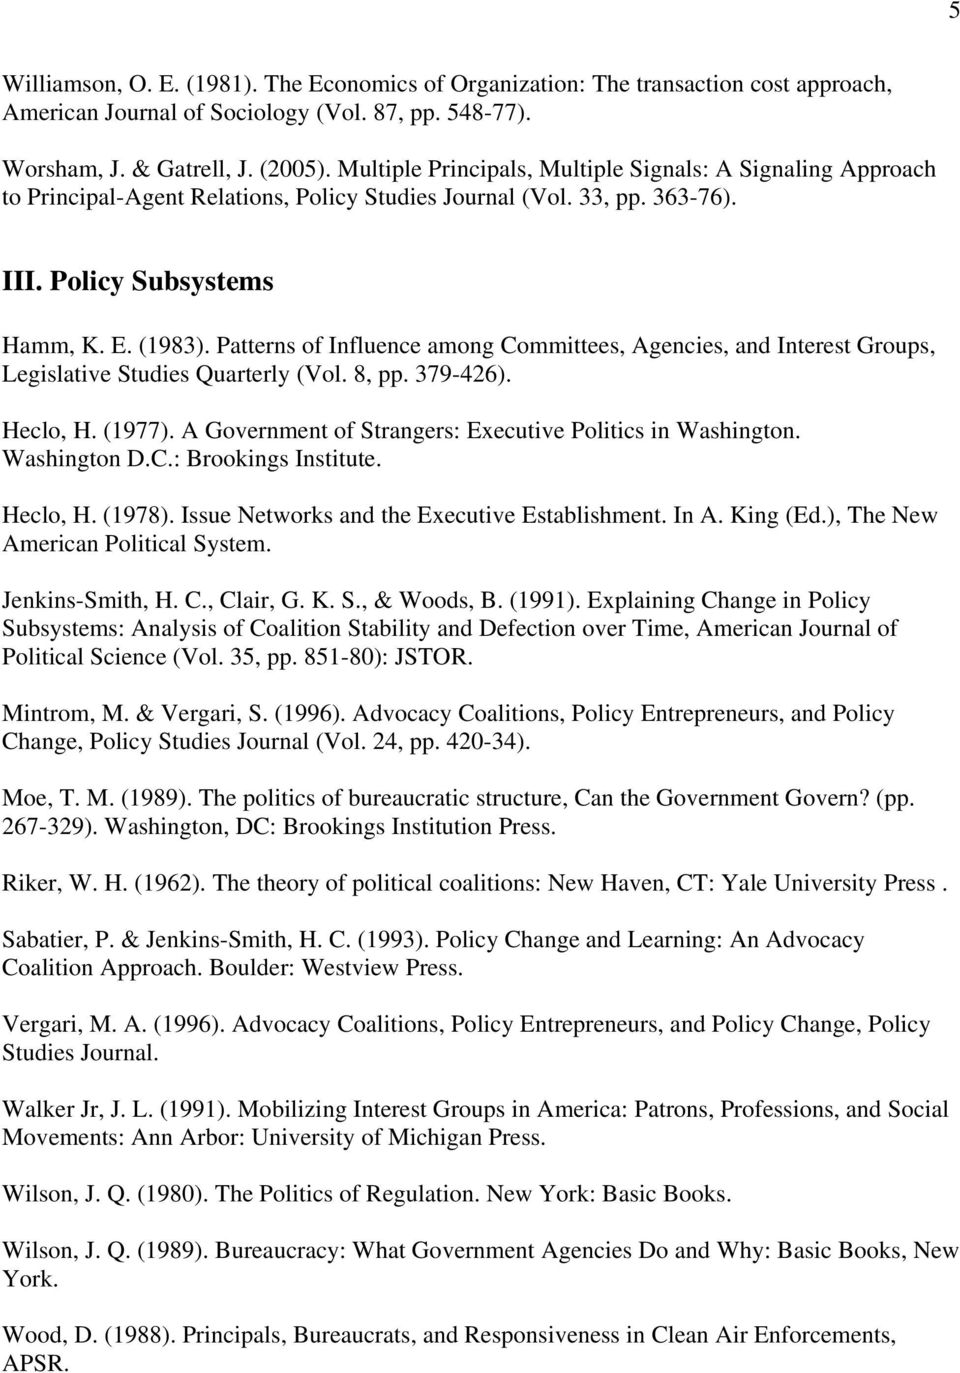 Patterns of Influence among Committees, Agencies, and Interest Groups, Legislative Studies Quarterly (Vol. 8, pp. 379-426). Heclo, H. (1977).